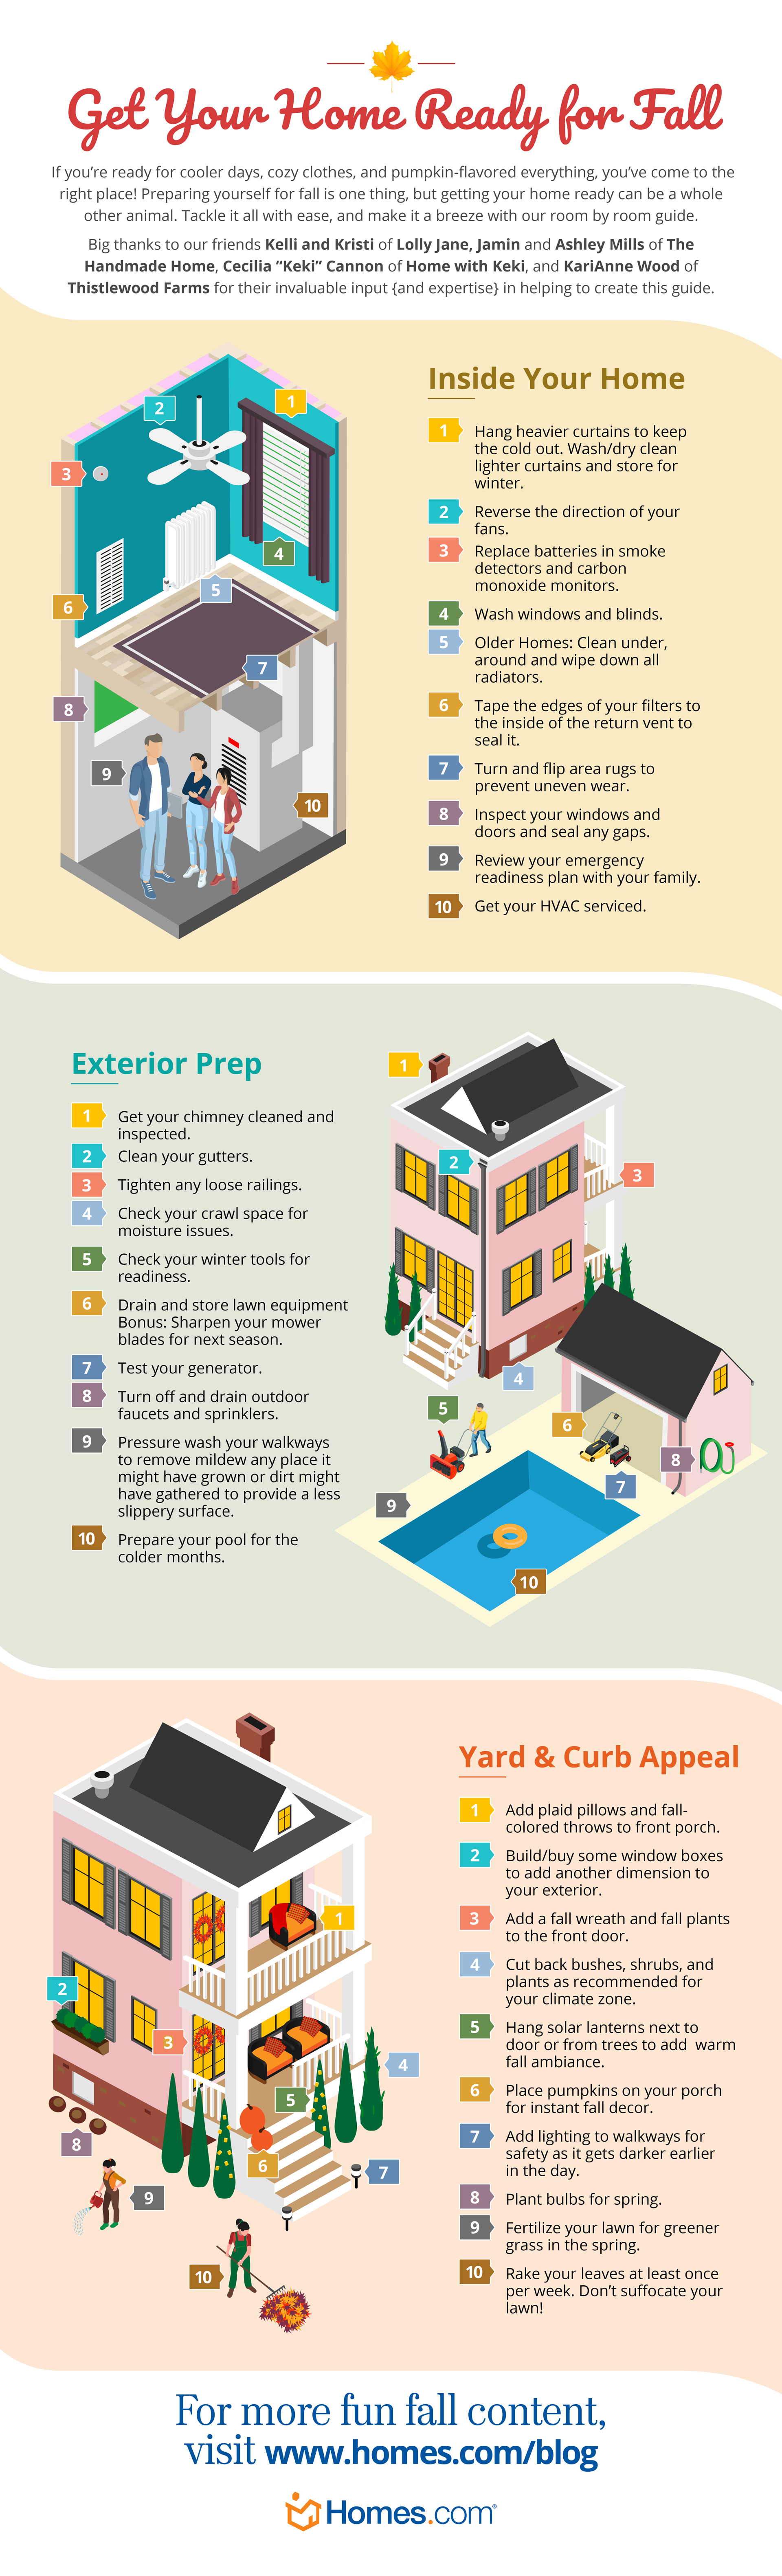 HDC-Fall-Preparedness-Infographic-3139-1-1